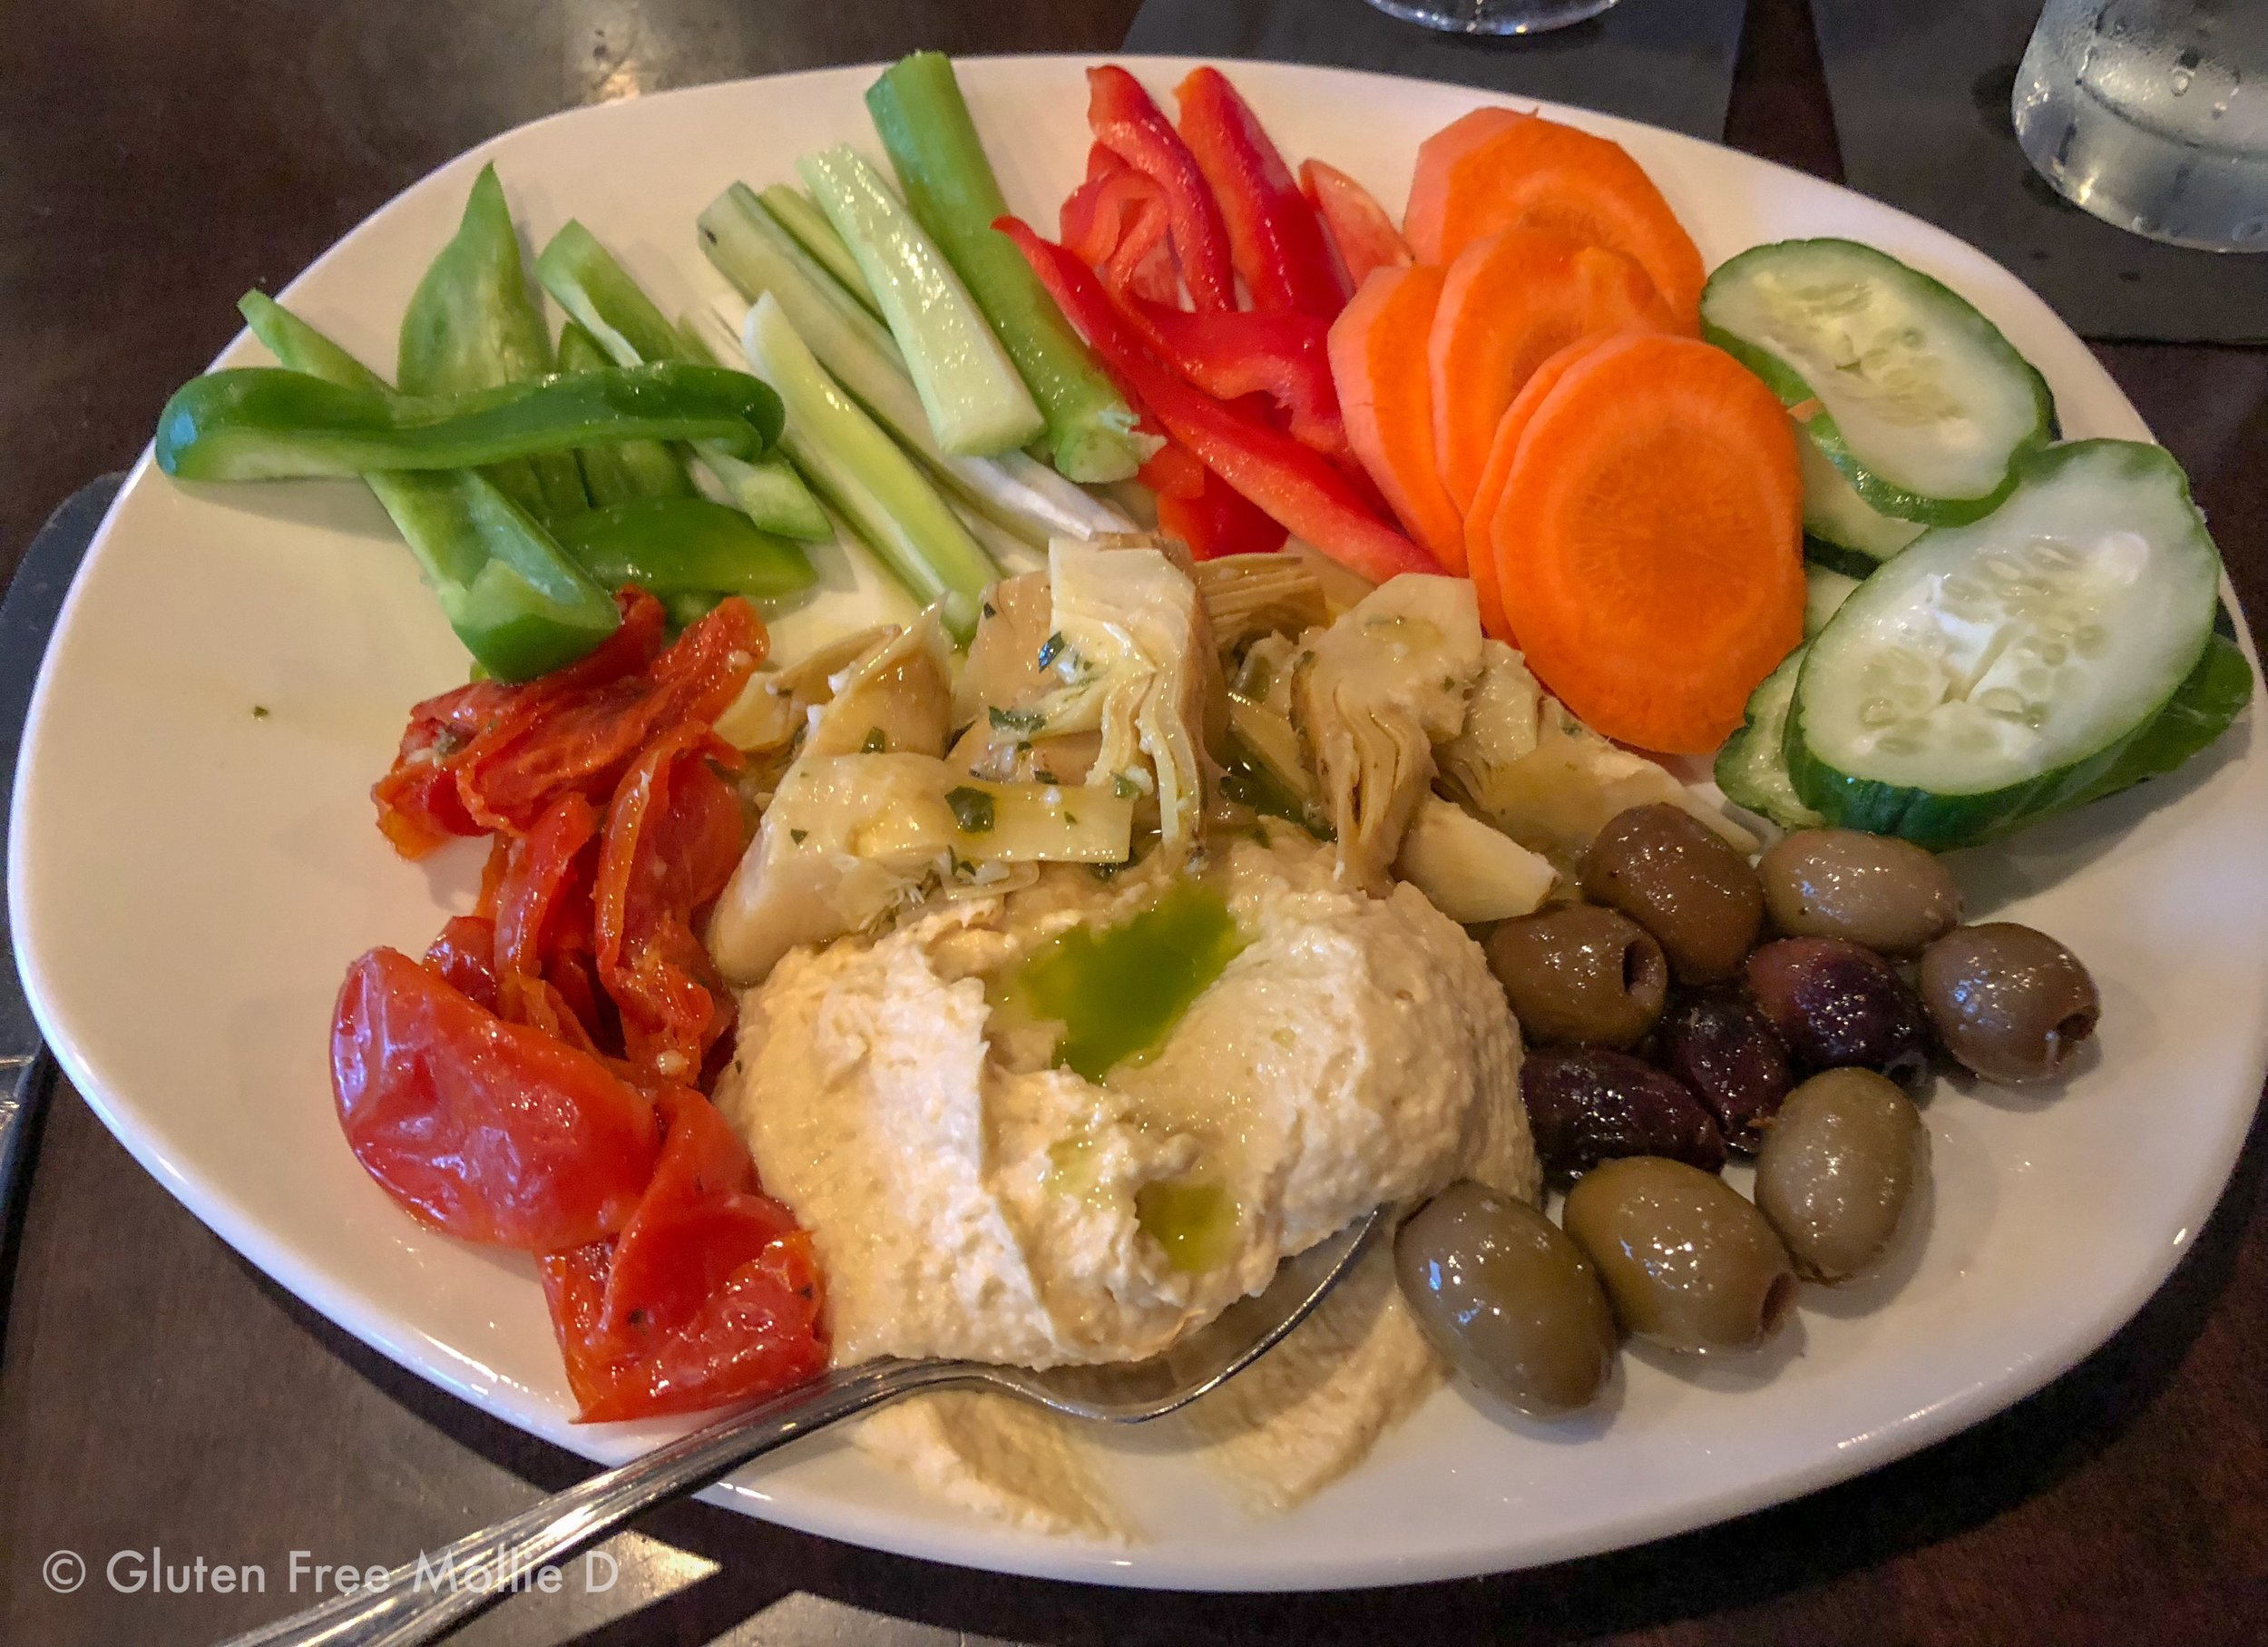 Hummus plate with veggies and goodies.